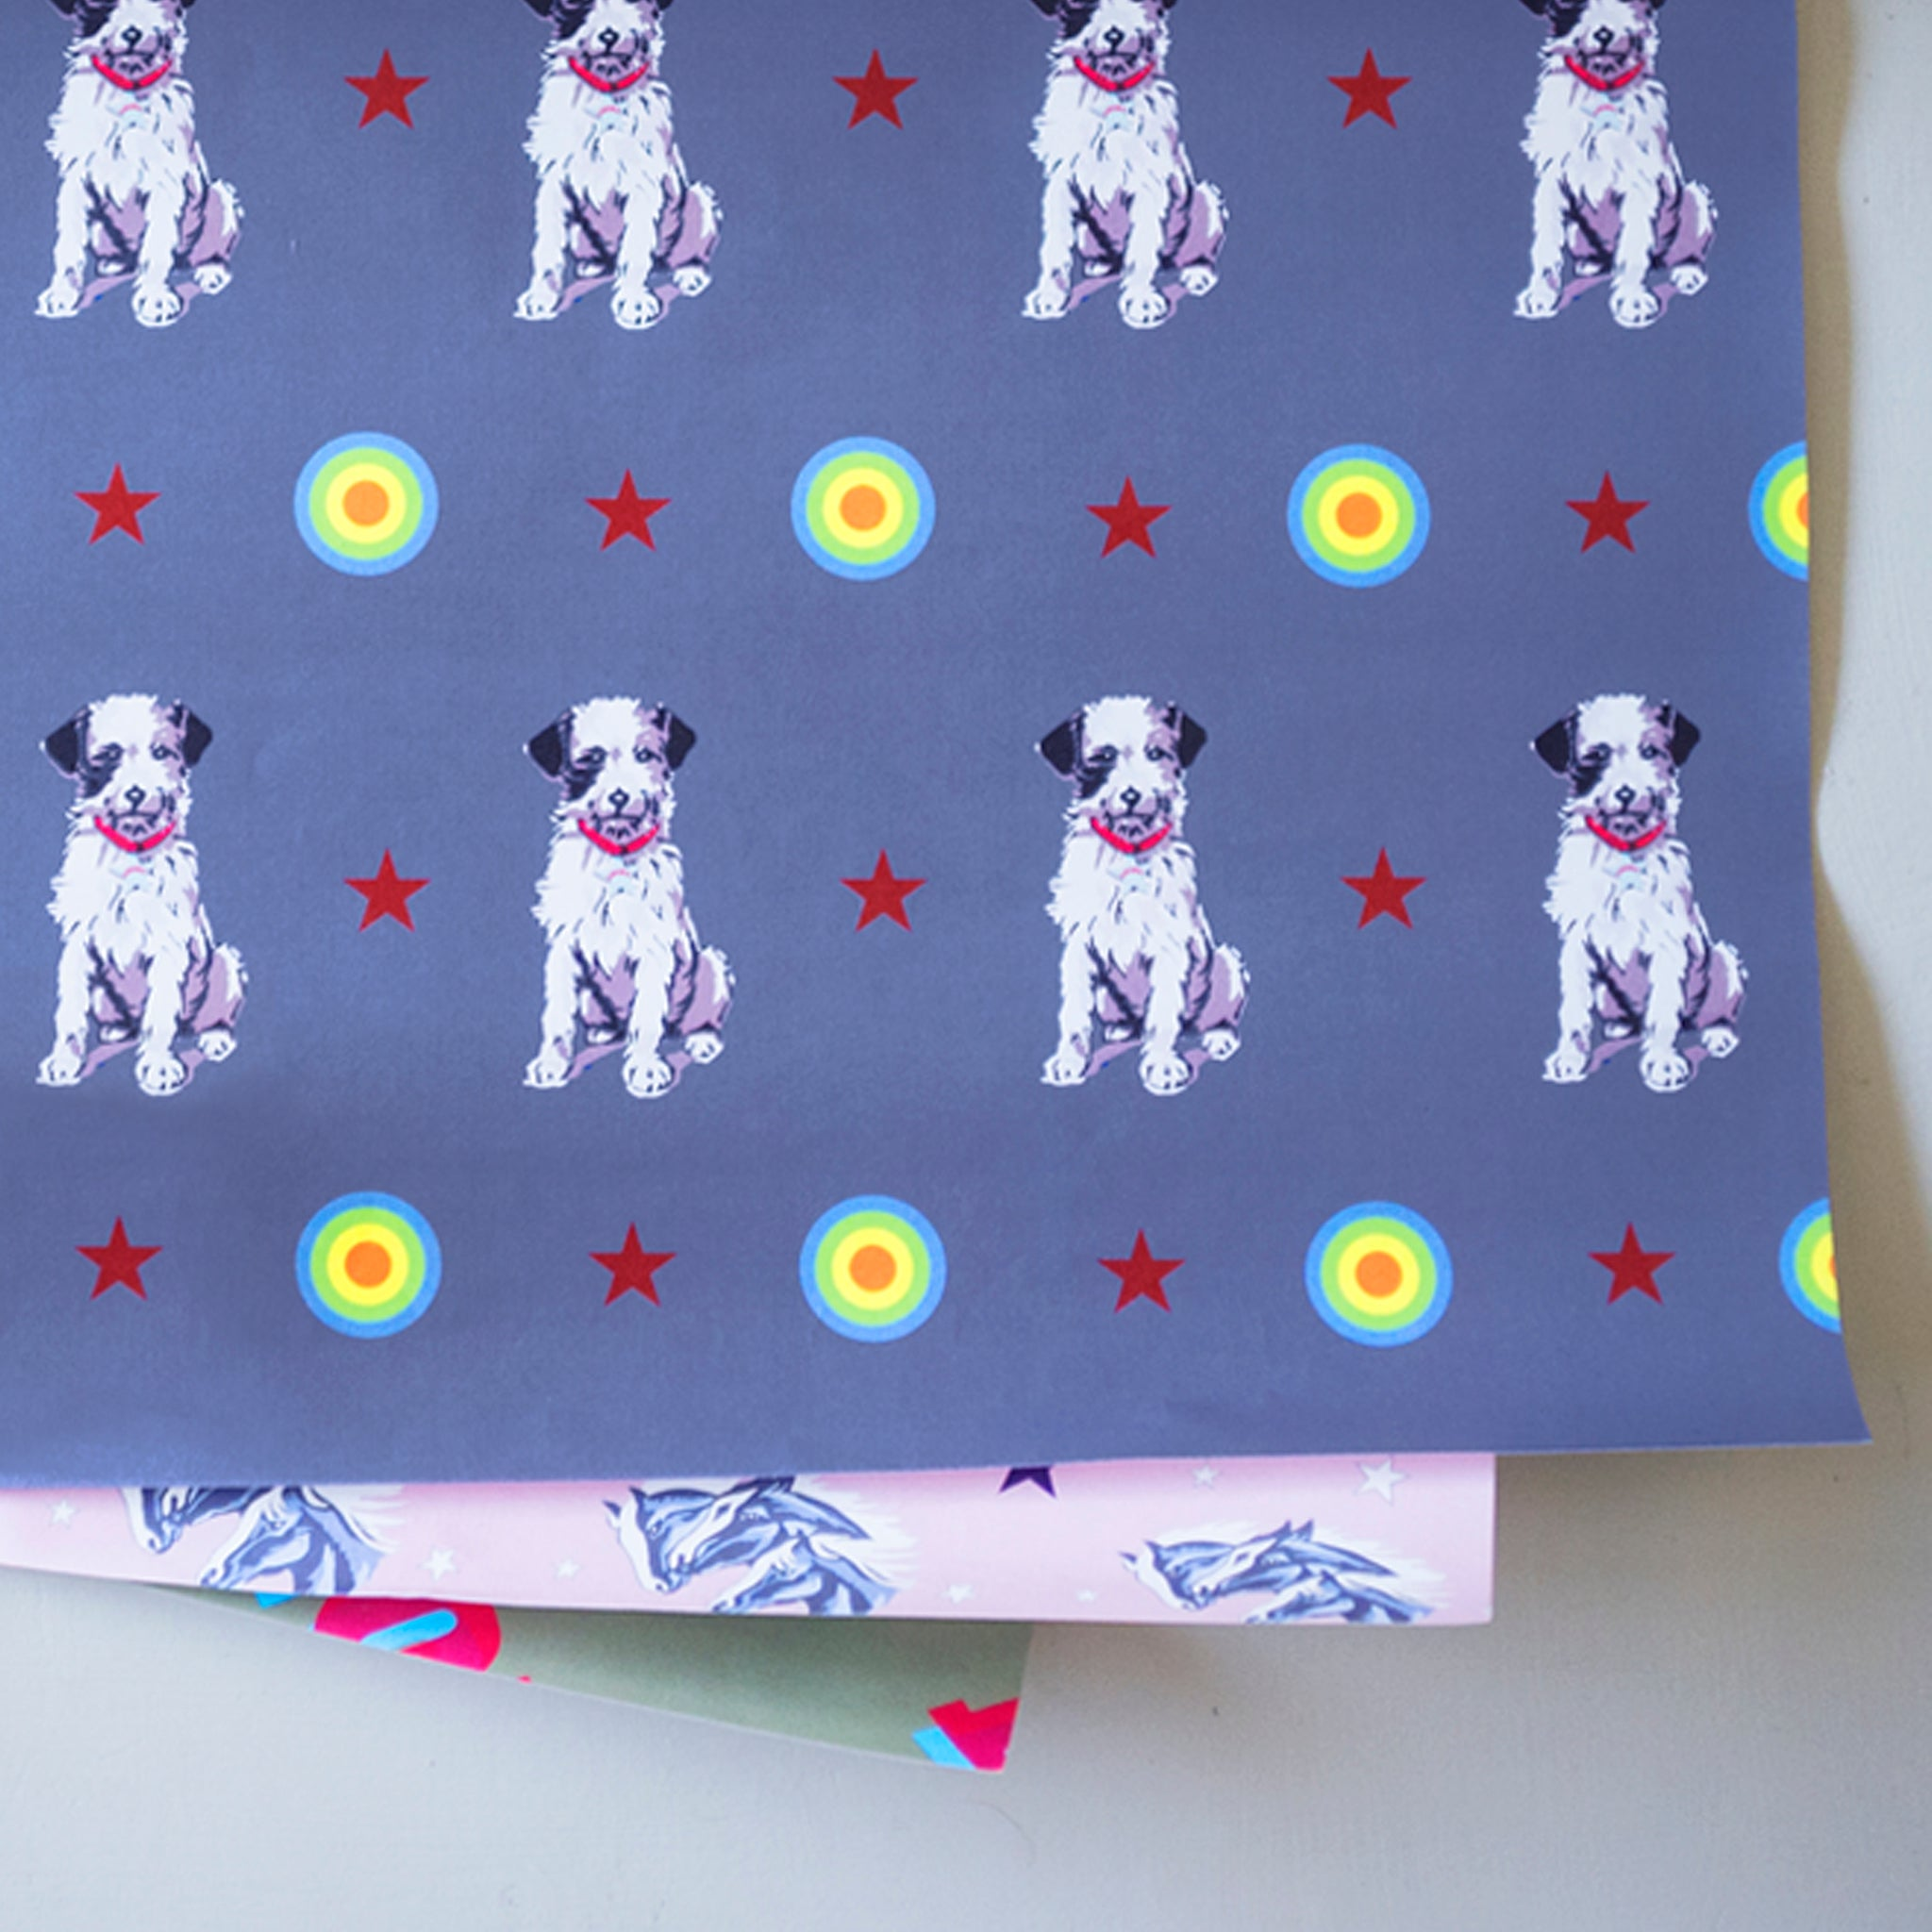 MIXED WRAP - 6 SHEETS OR 12 SHEETS - Dandy Star